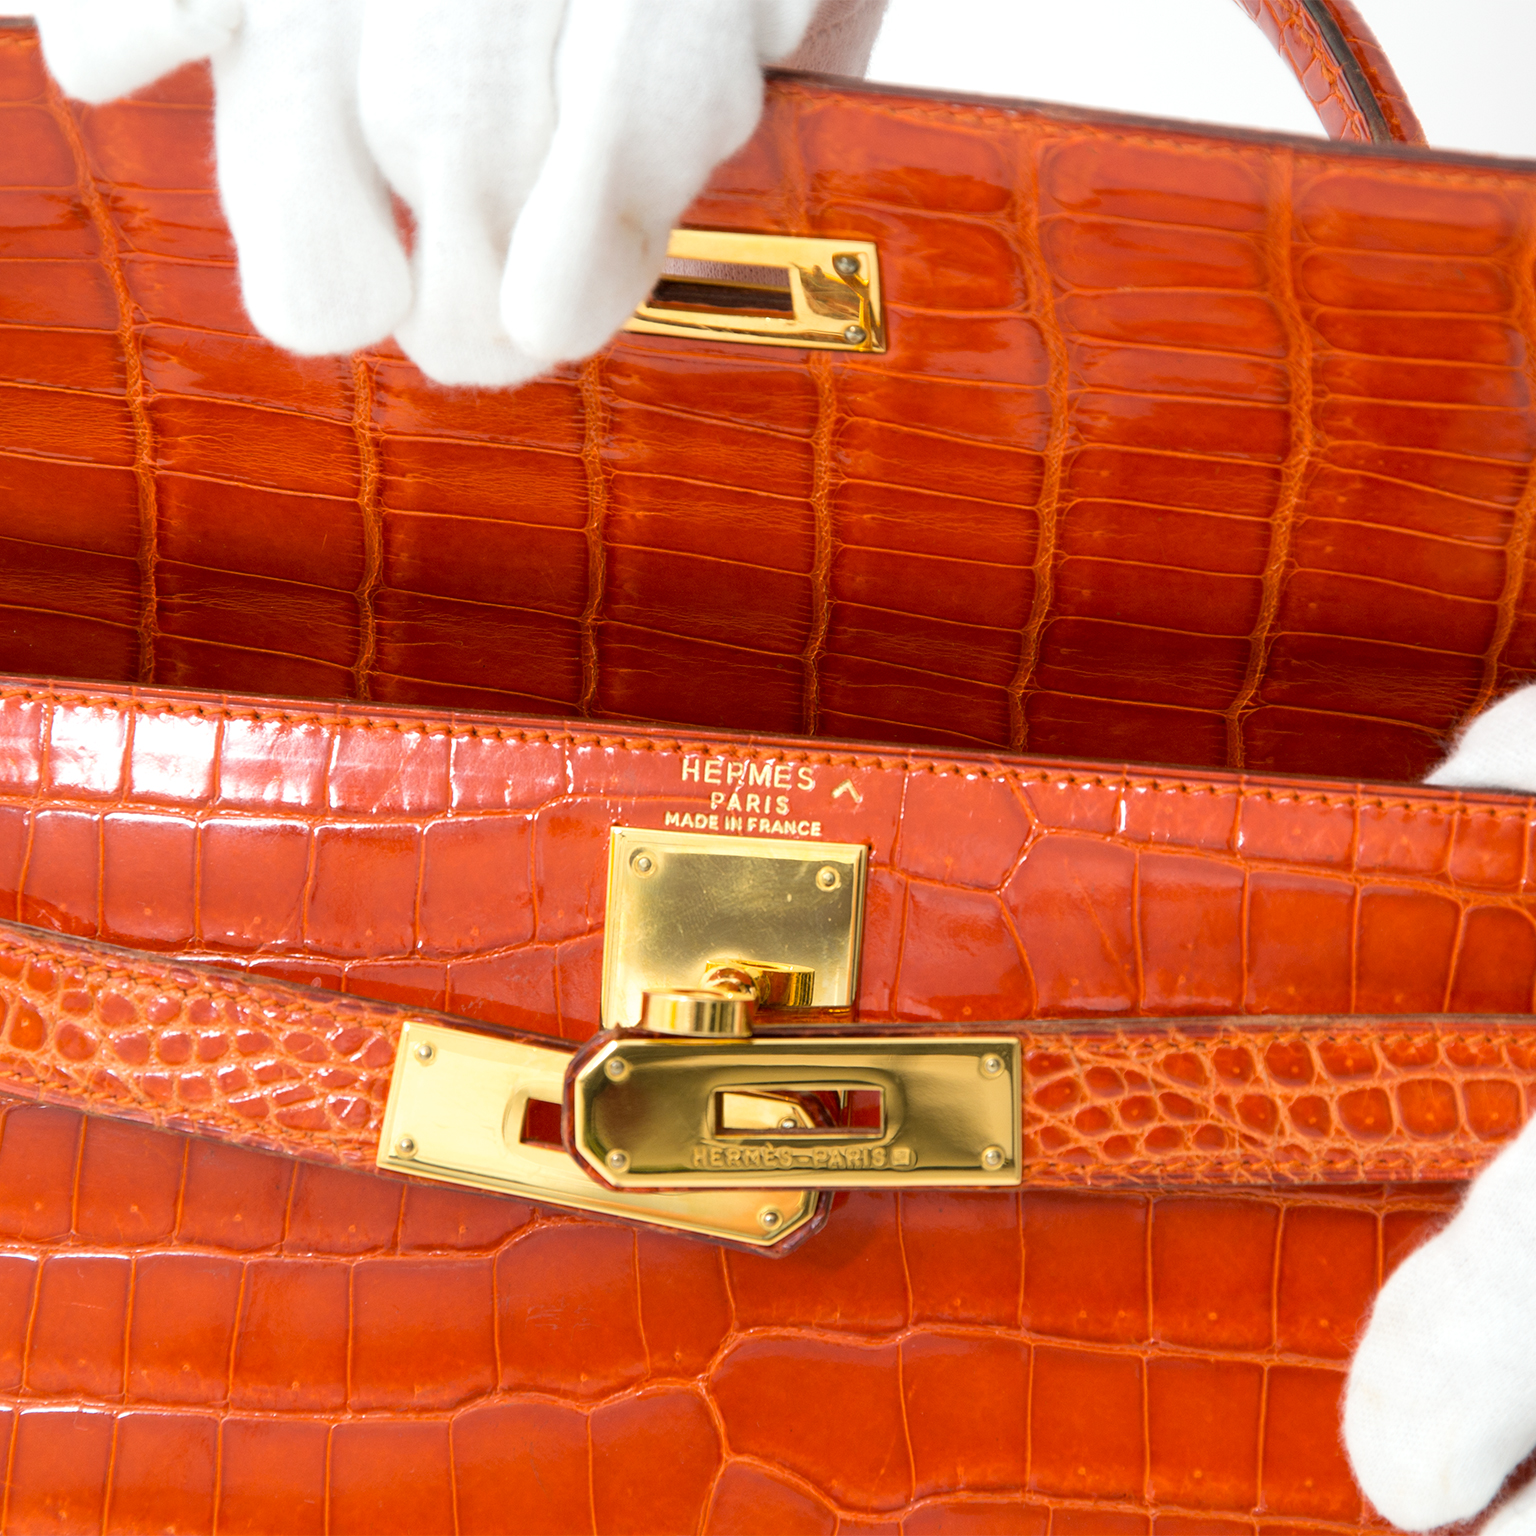 55fea6755542 Hermès Kelly 28 Rouge Agathe Crocodile Porosus GHW With Strap Preowned Hermès  Kelly 29 Rouge Agathe Crocodile Porosus GHW With Strap